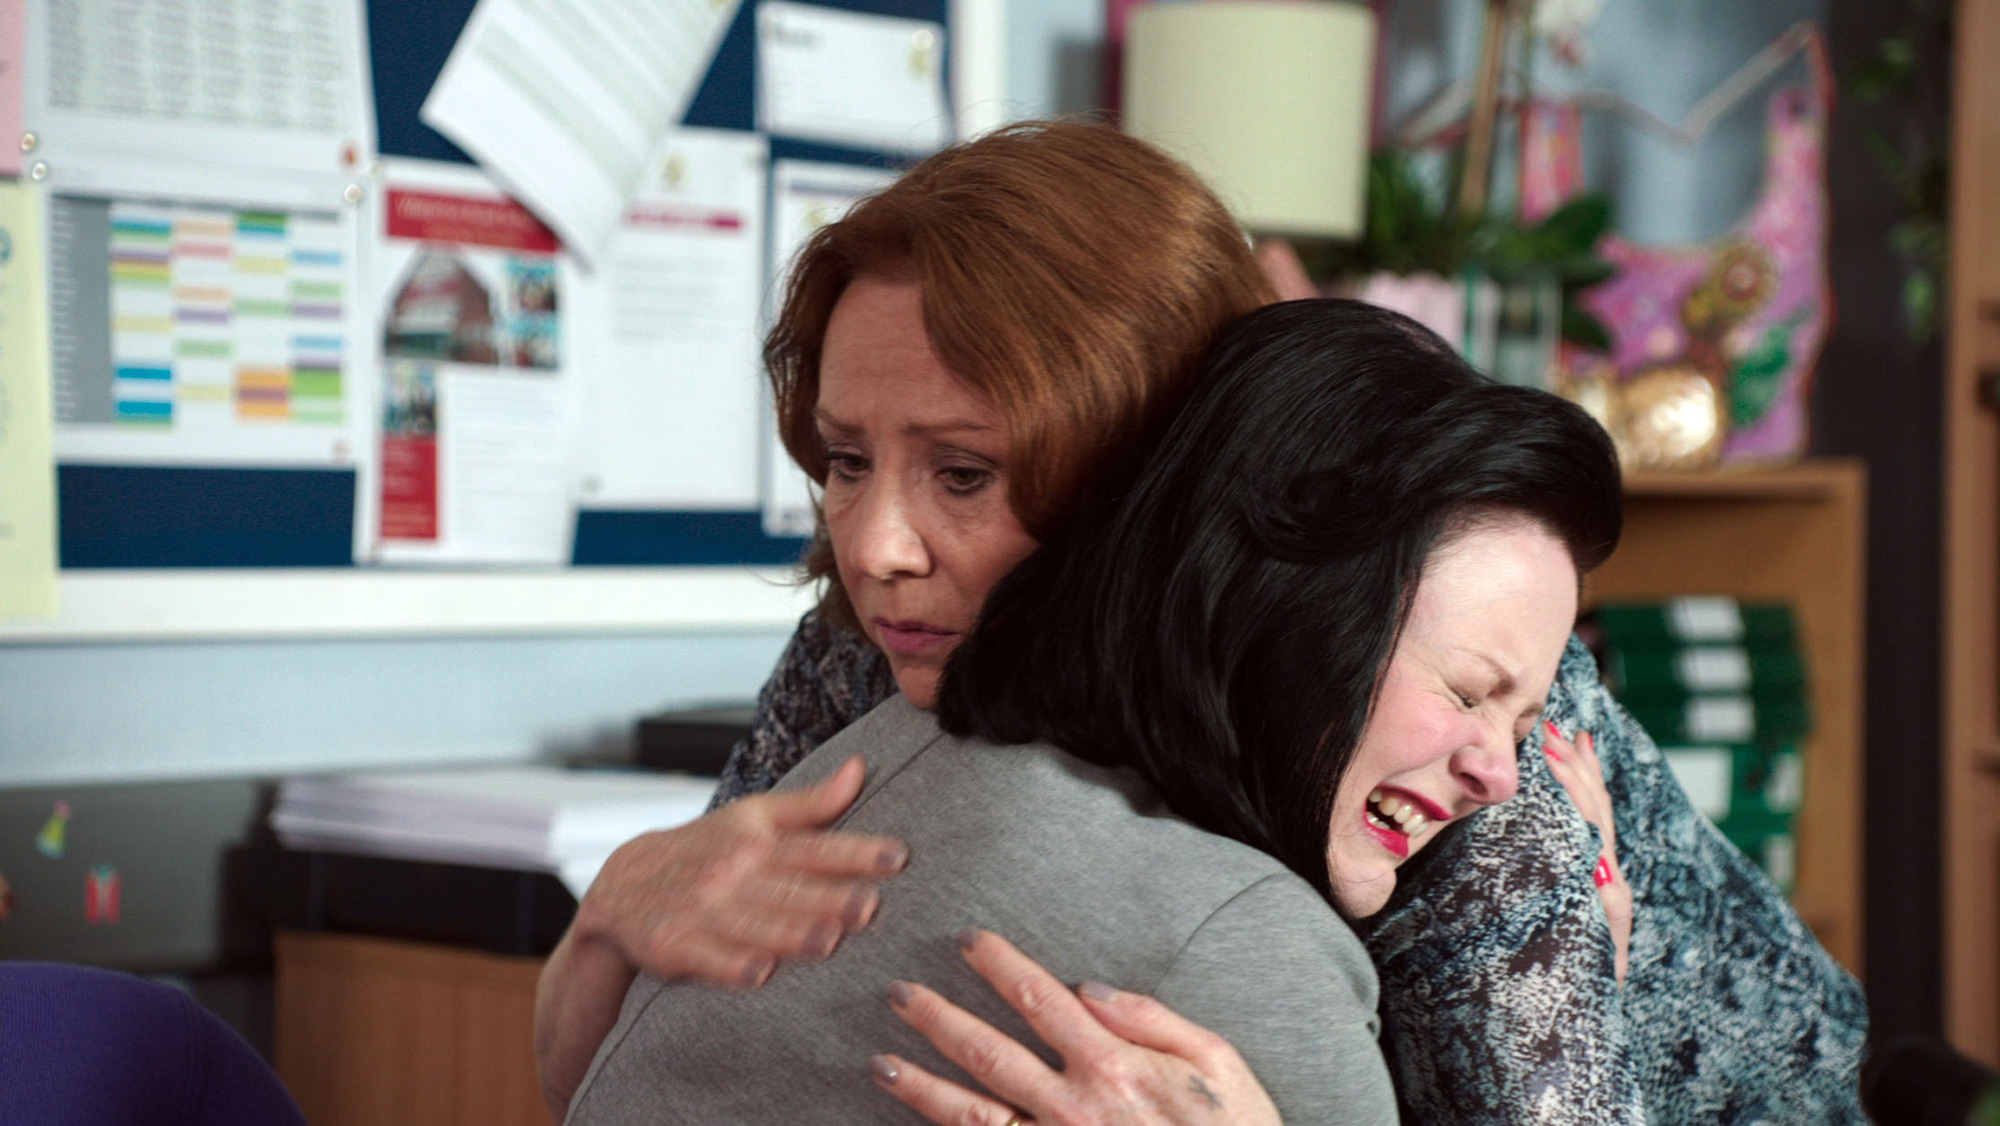 Waterloo Road final series continues: 9 teasers from episode 13